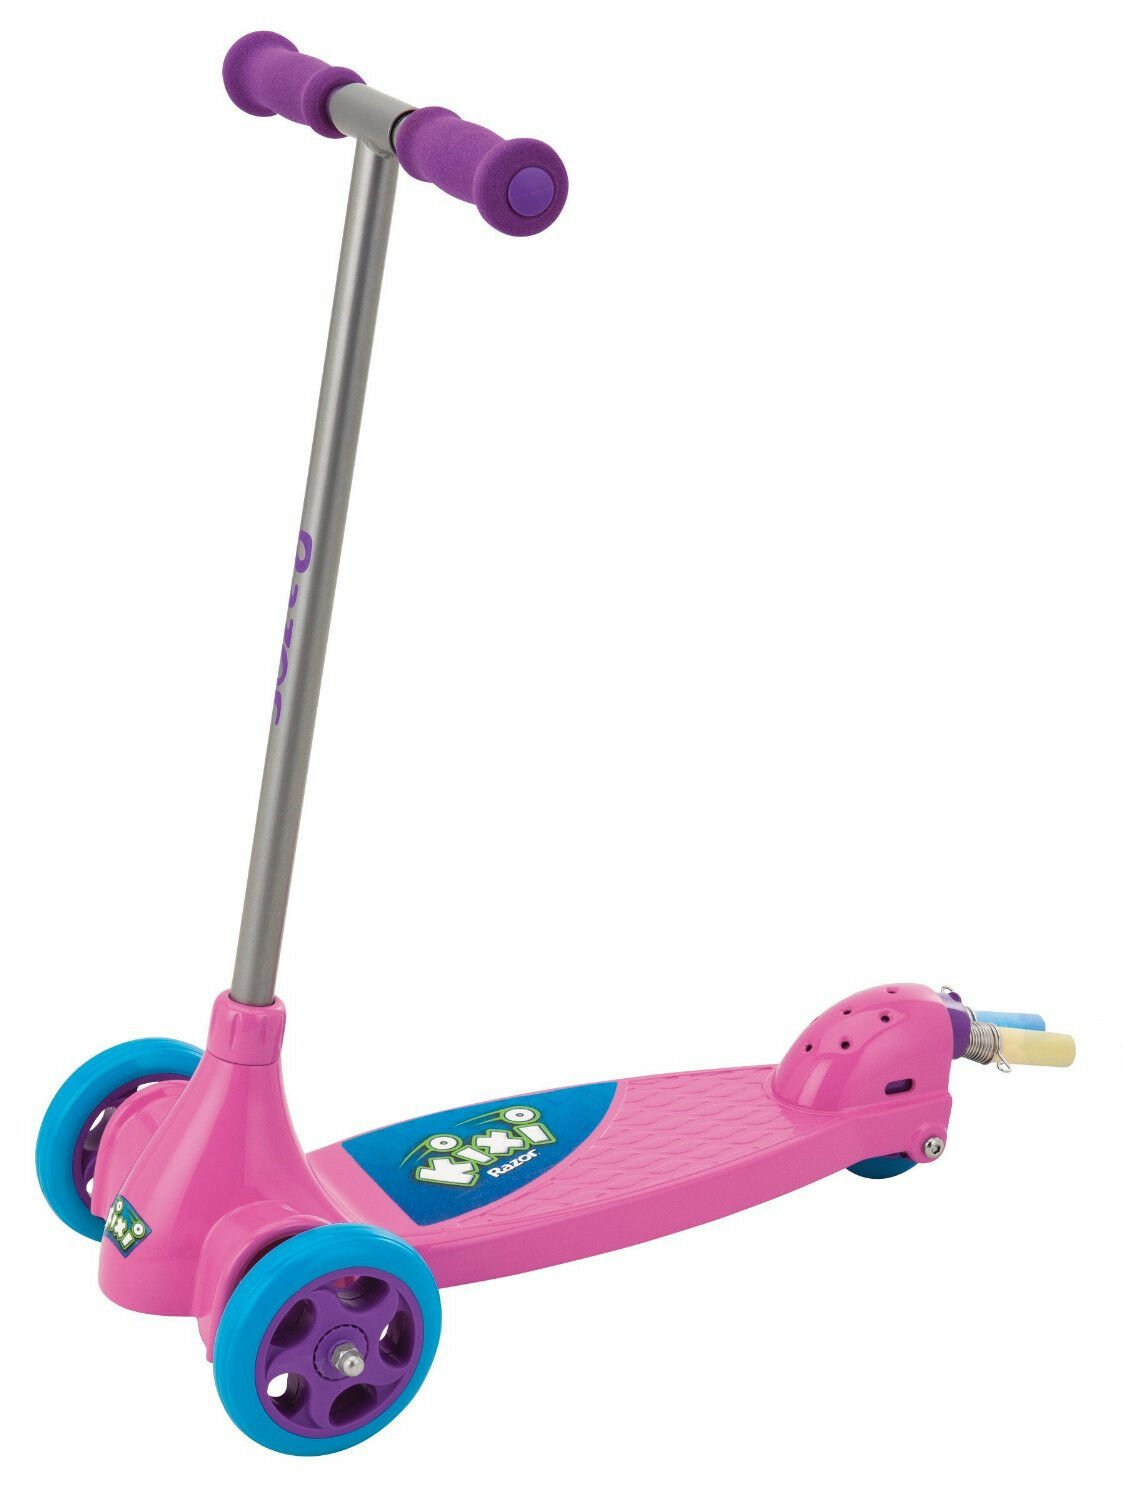 Razor Kixi Scribble Scooter Girl's toy Gift Riding toy Chalk art  Pink New  Kids